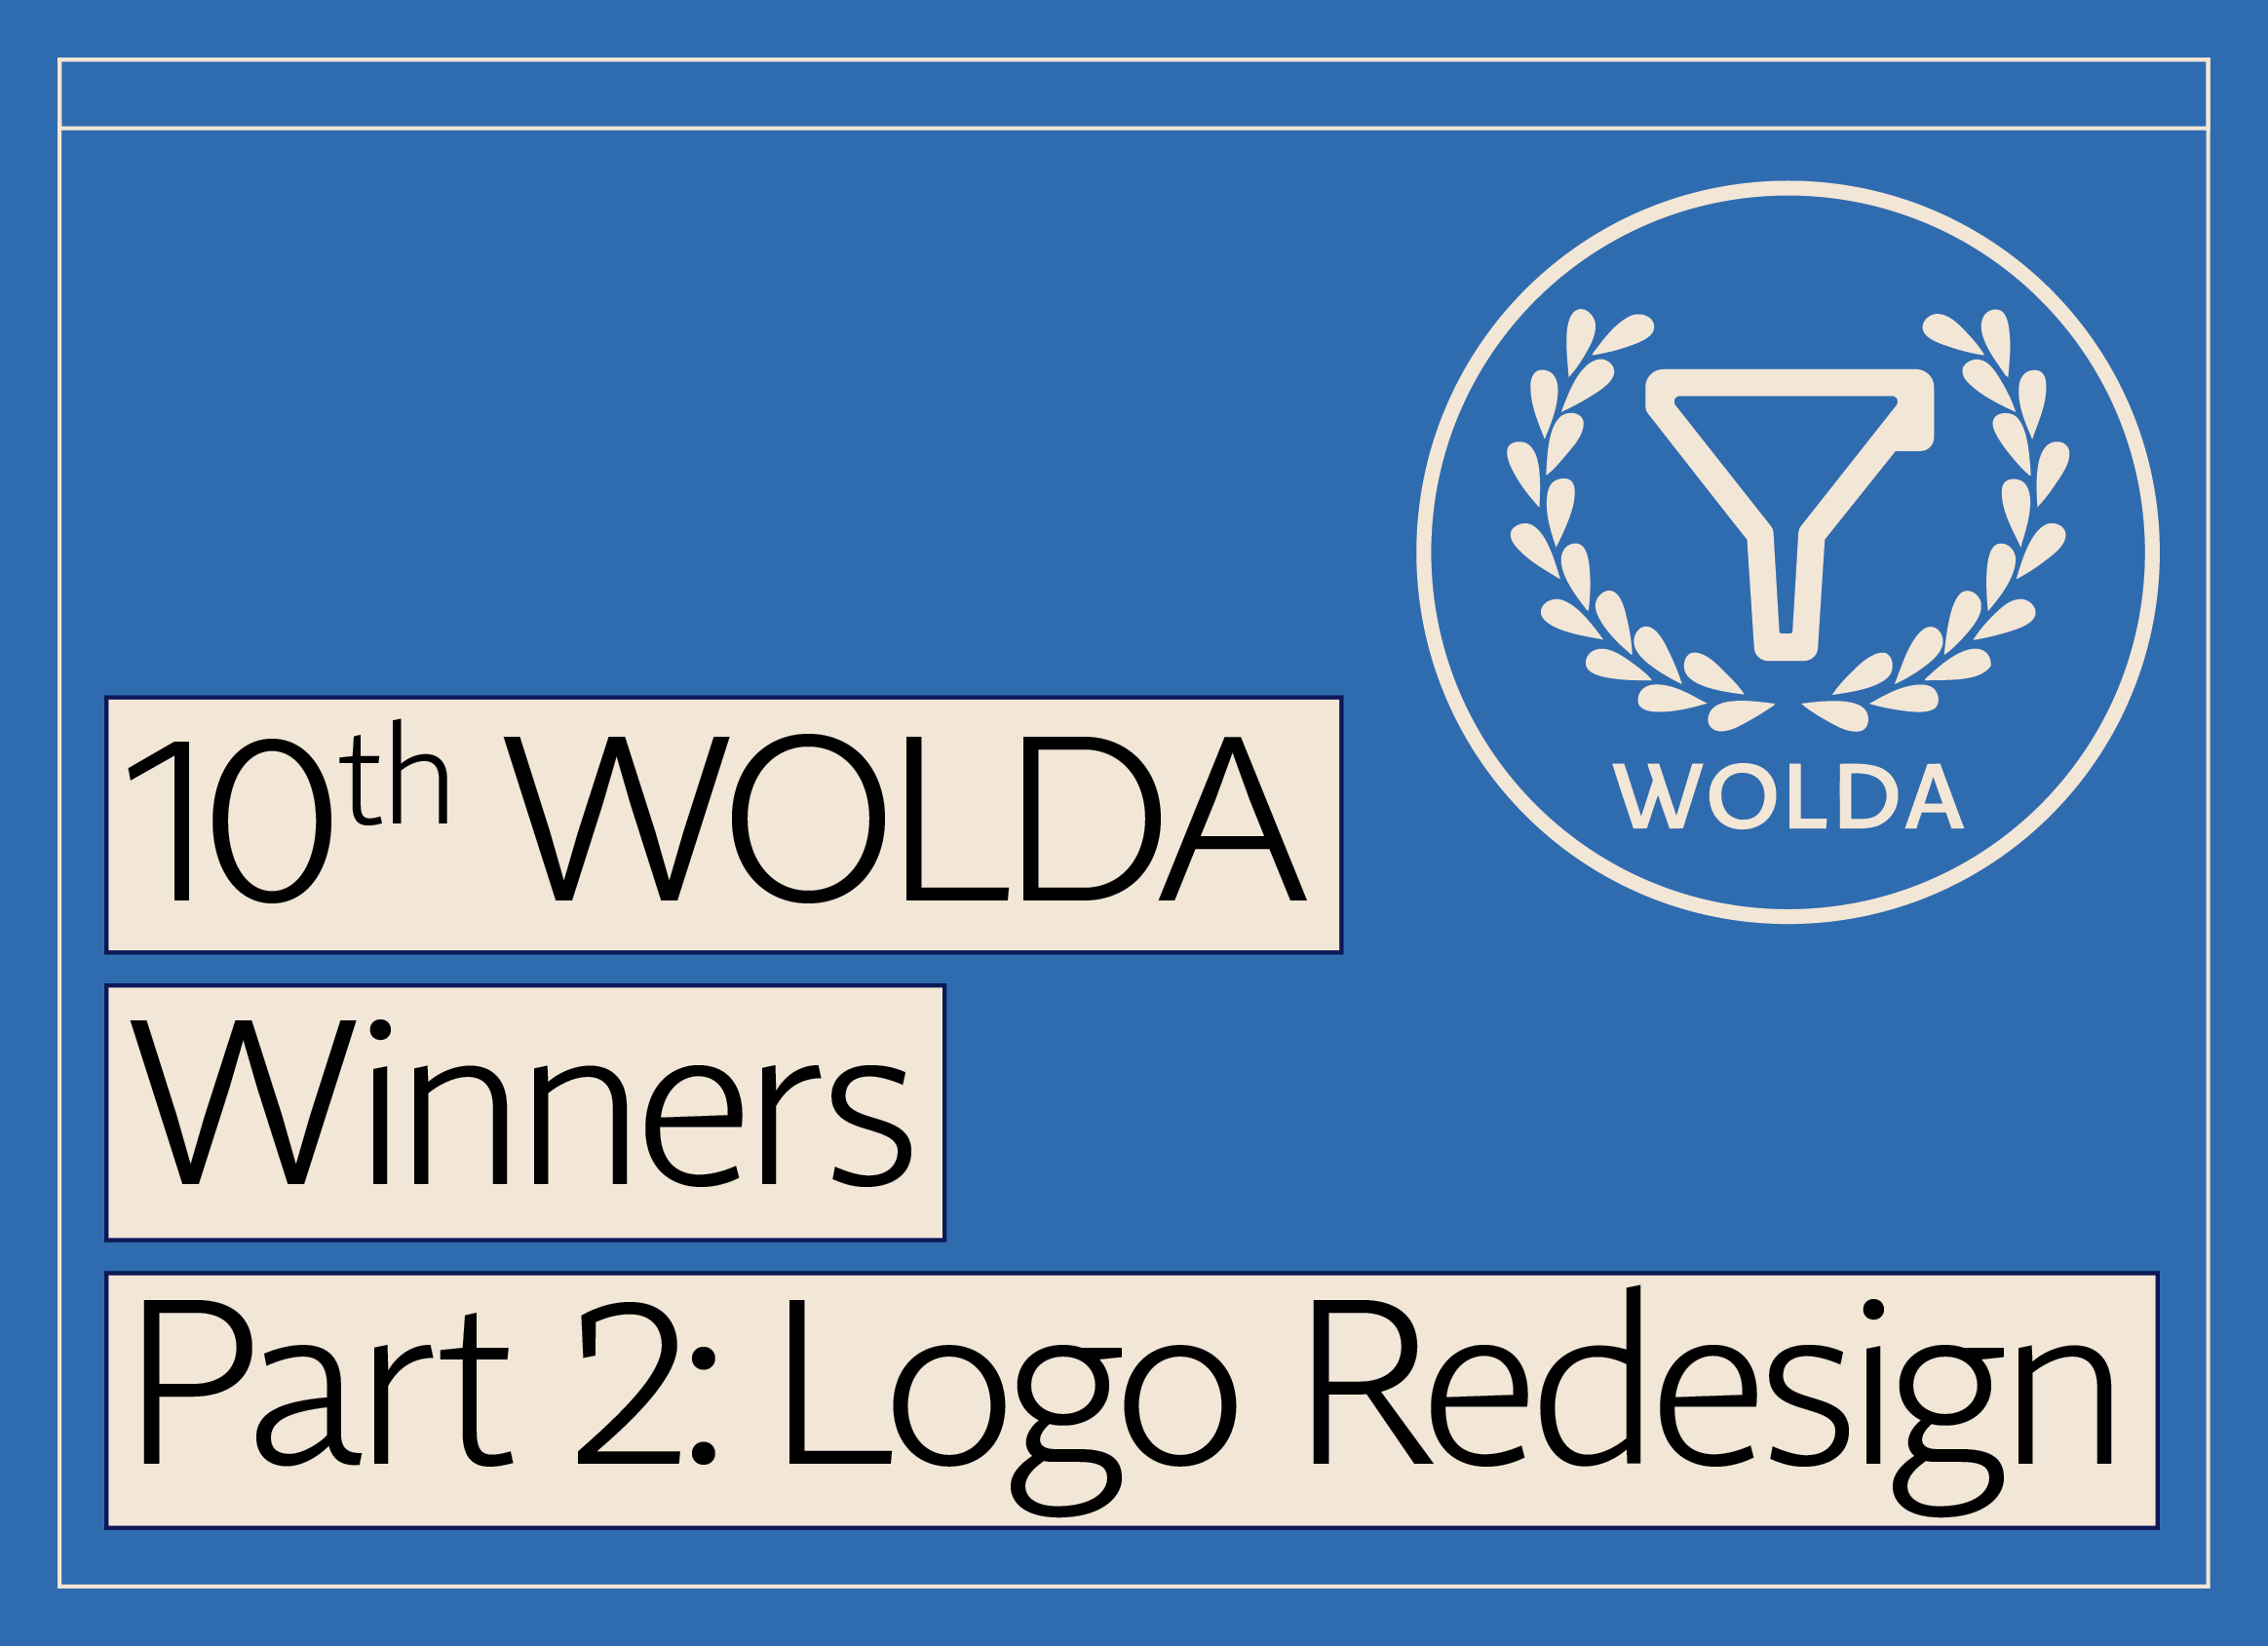 10th WOLDA Winners Part 2